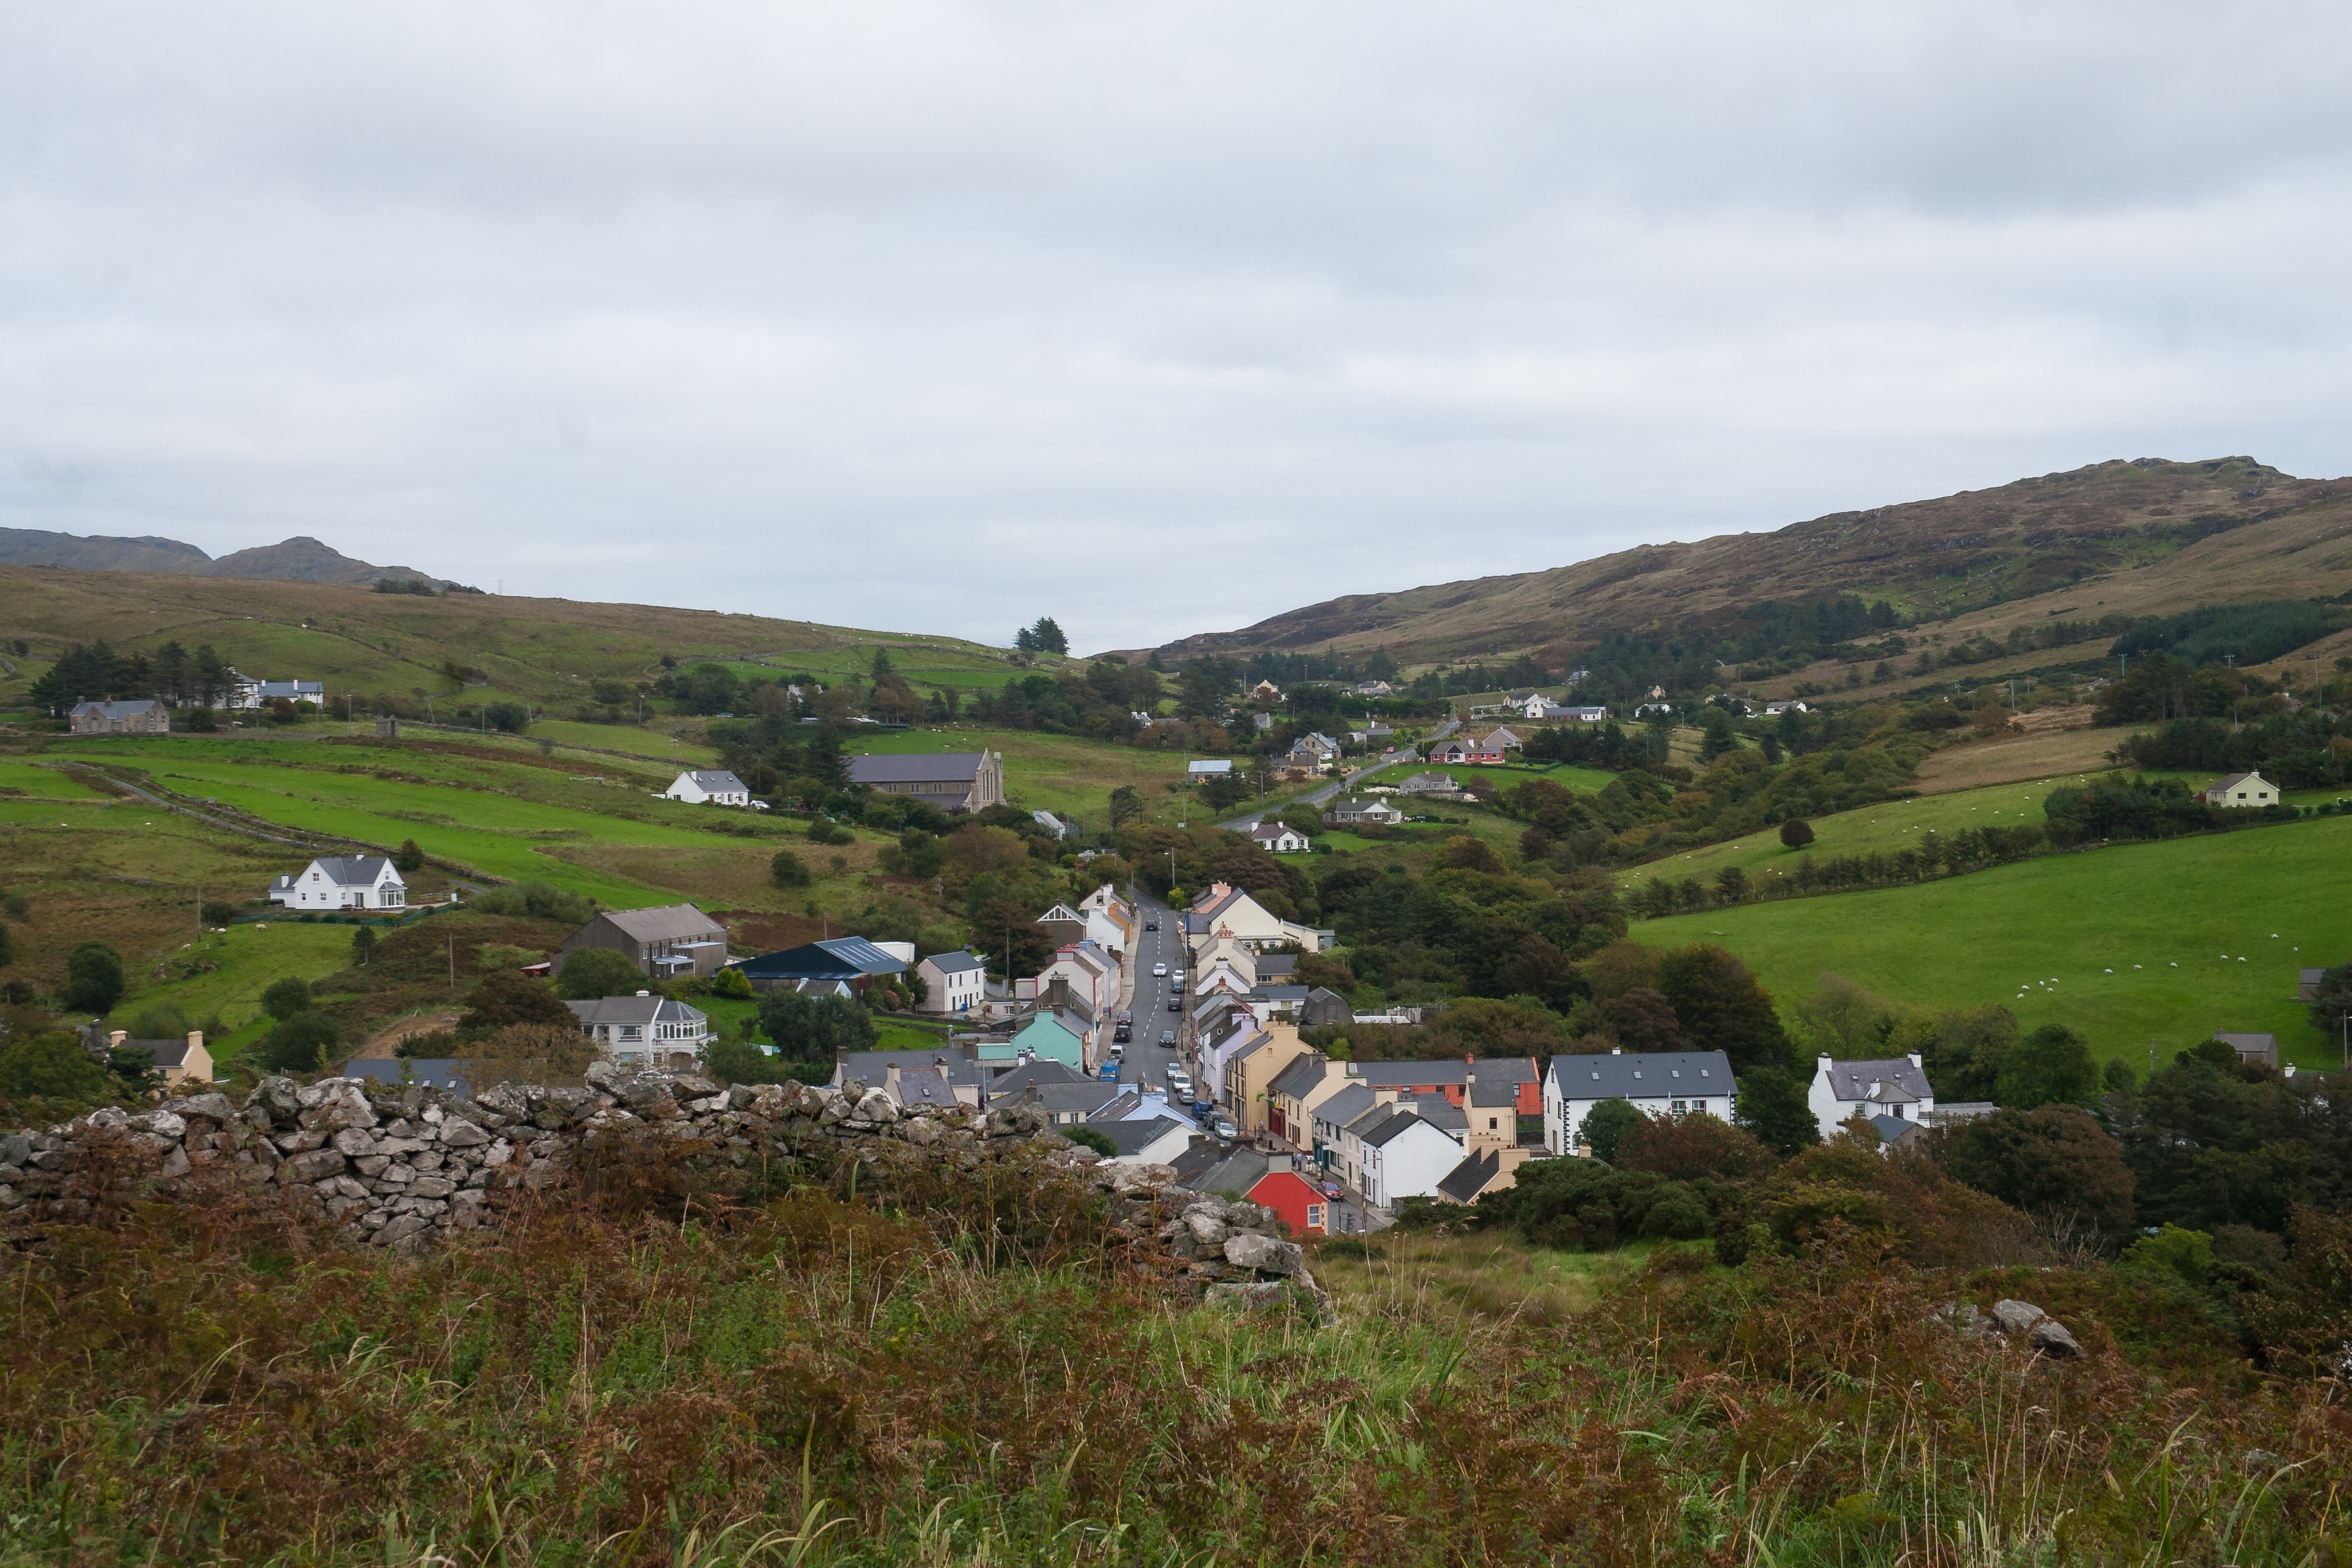 Kilcar_View_from_the_Monastic_Site_2010_09_24